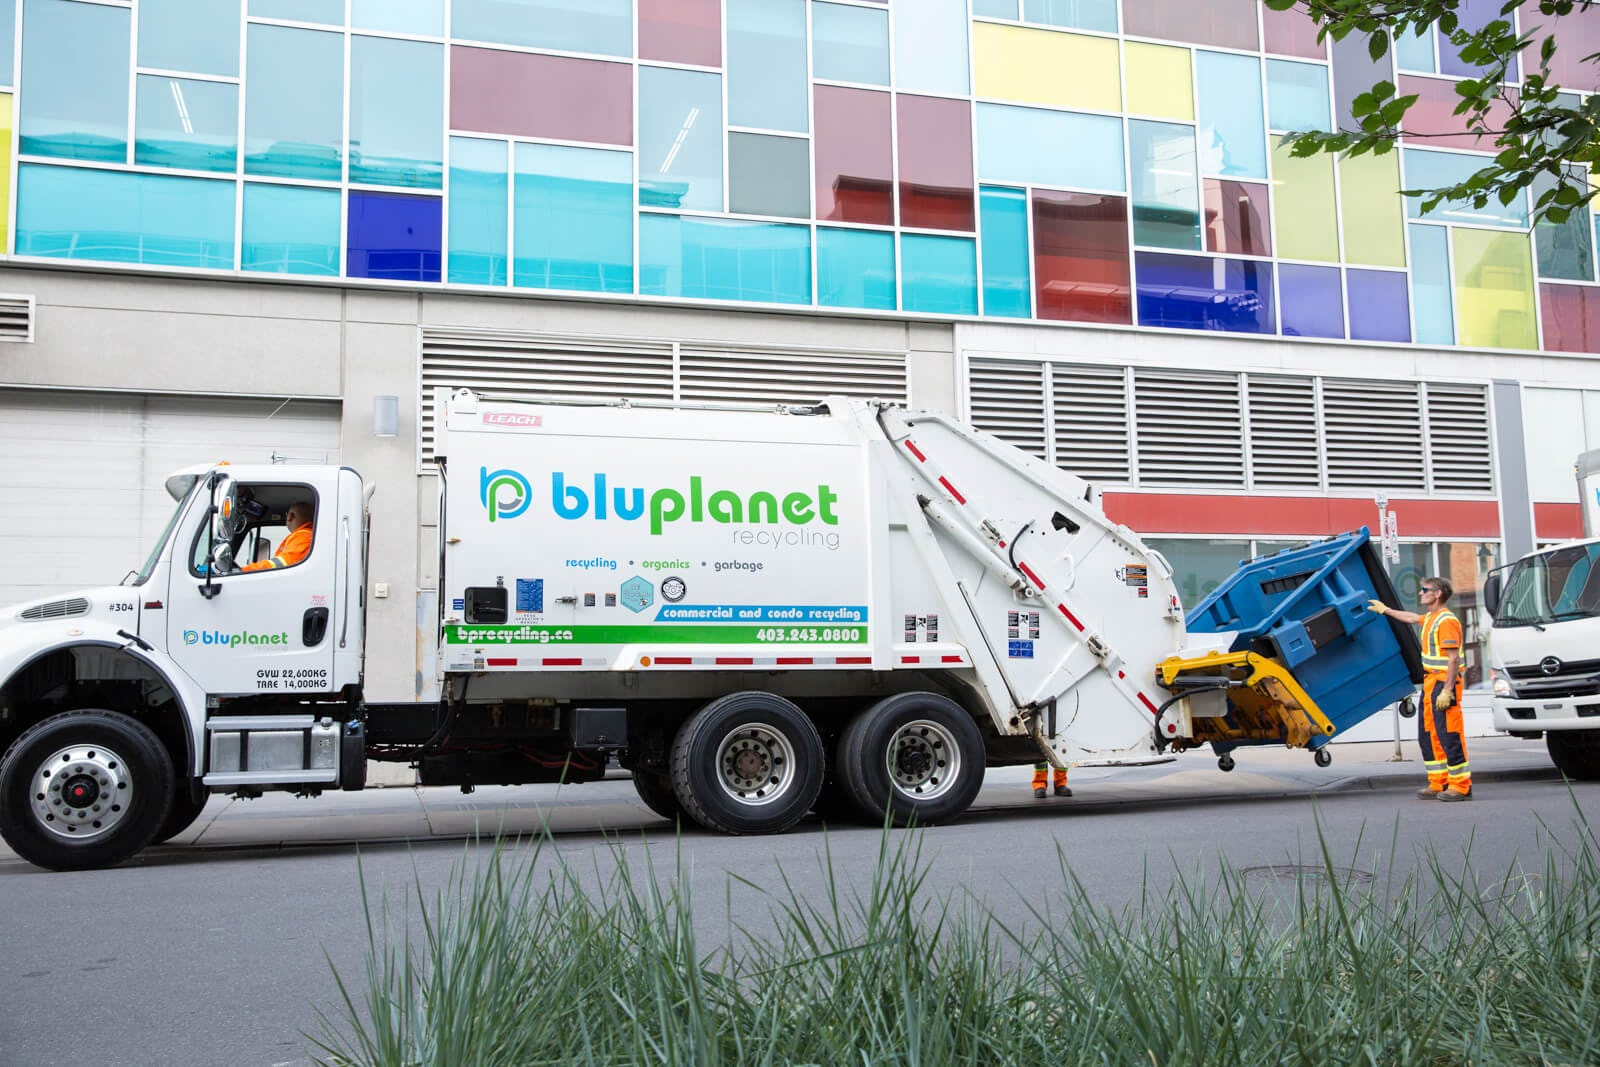 BluPlanet Recycling collecting mixed recycling at a downtown Calgary condo